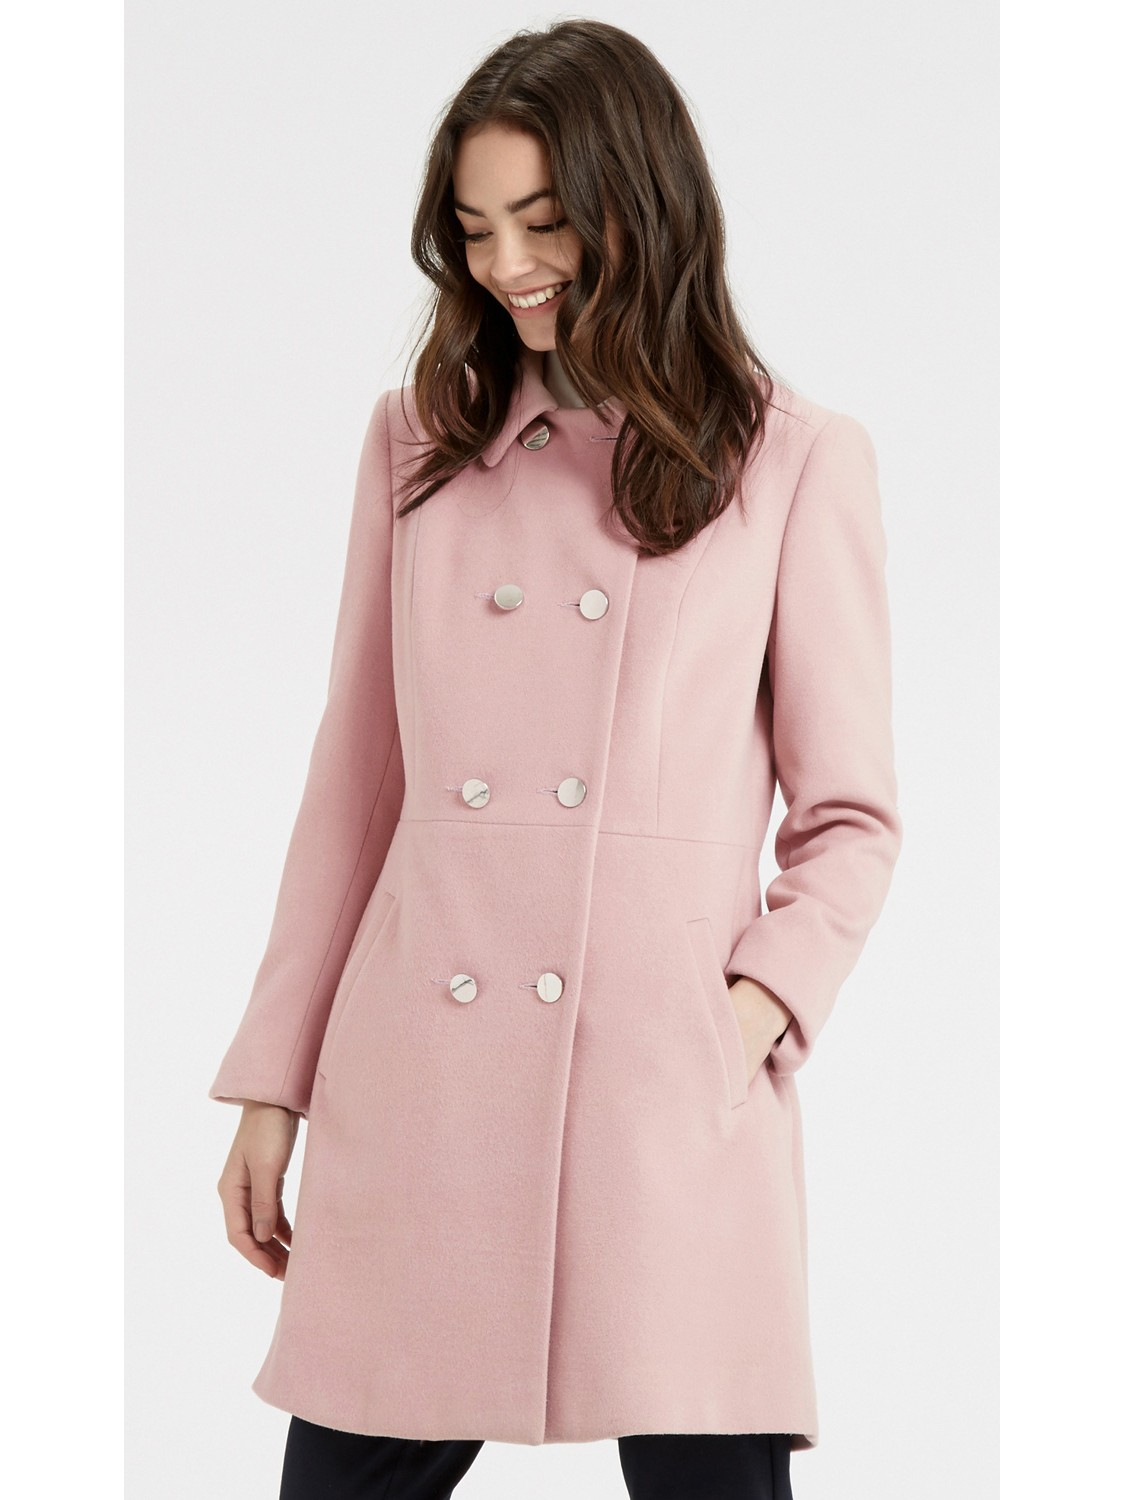 Oasis Double Breasted Princess Coat in Pink | Lyst